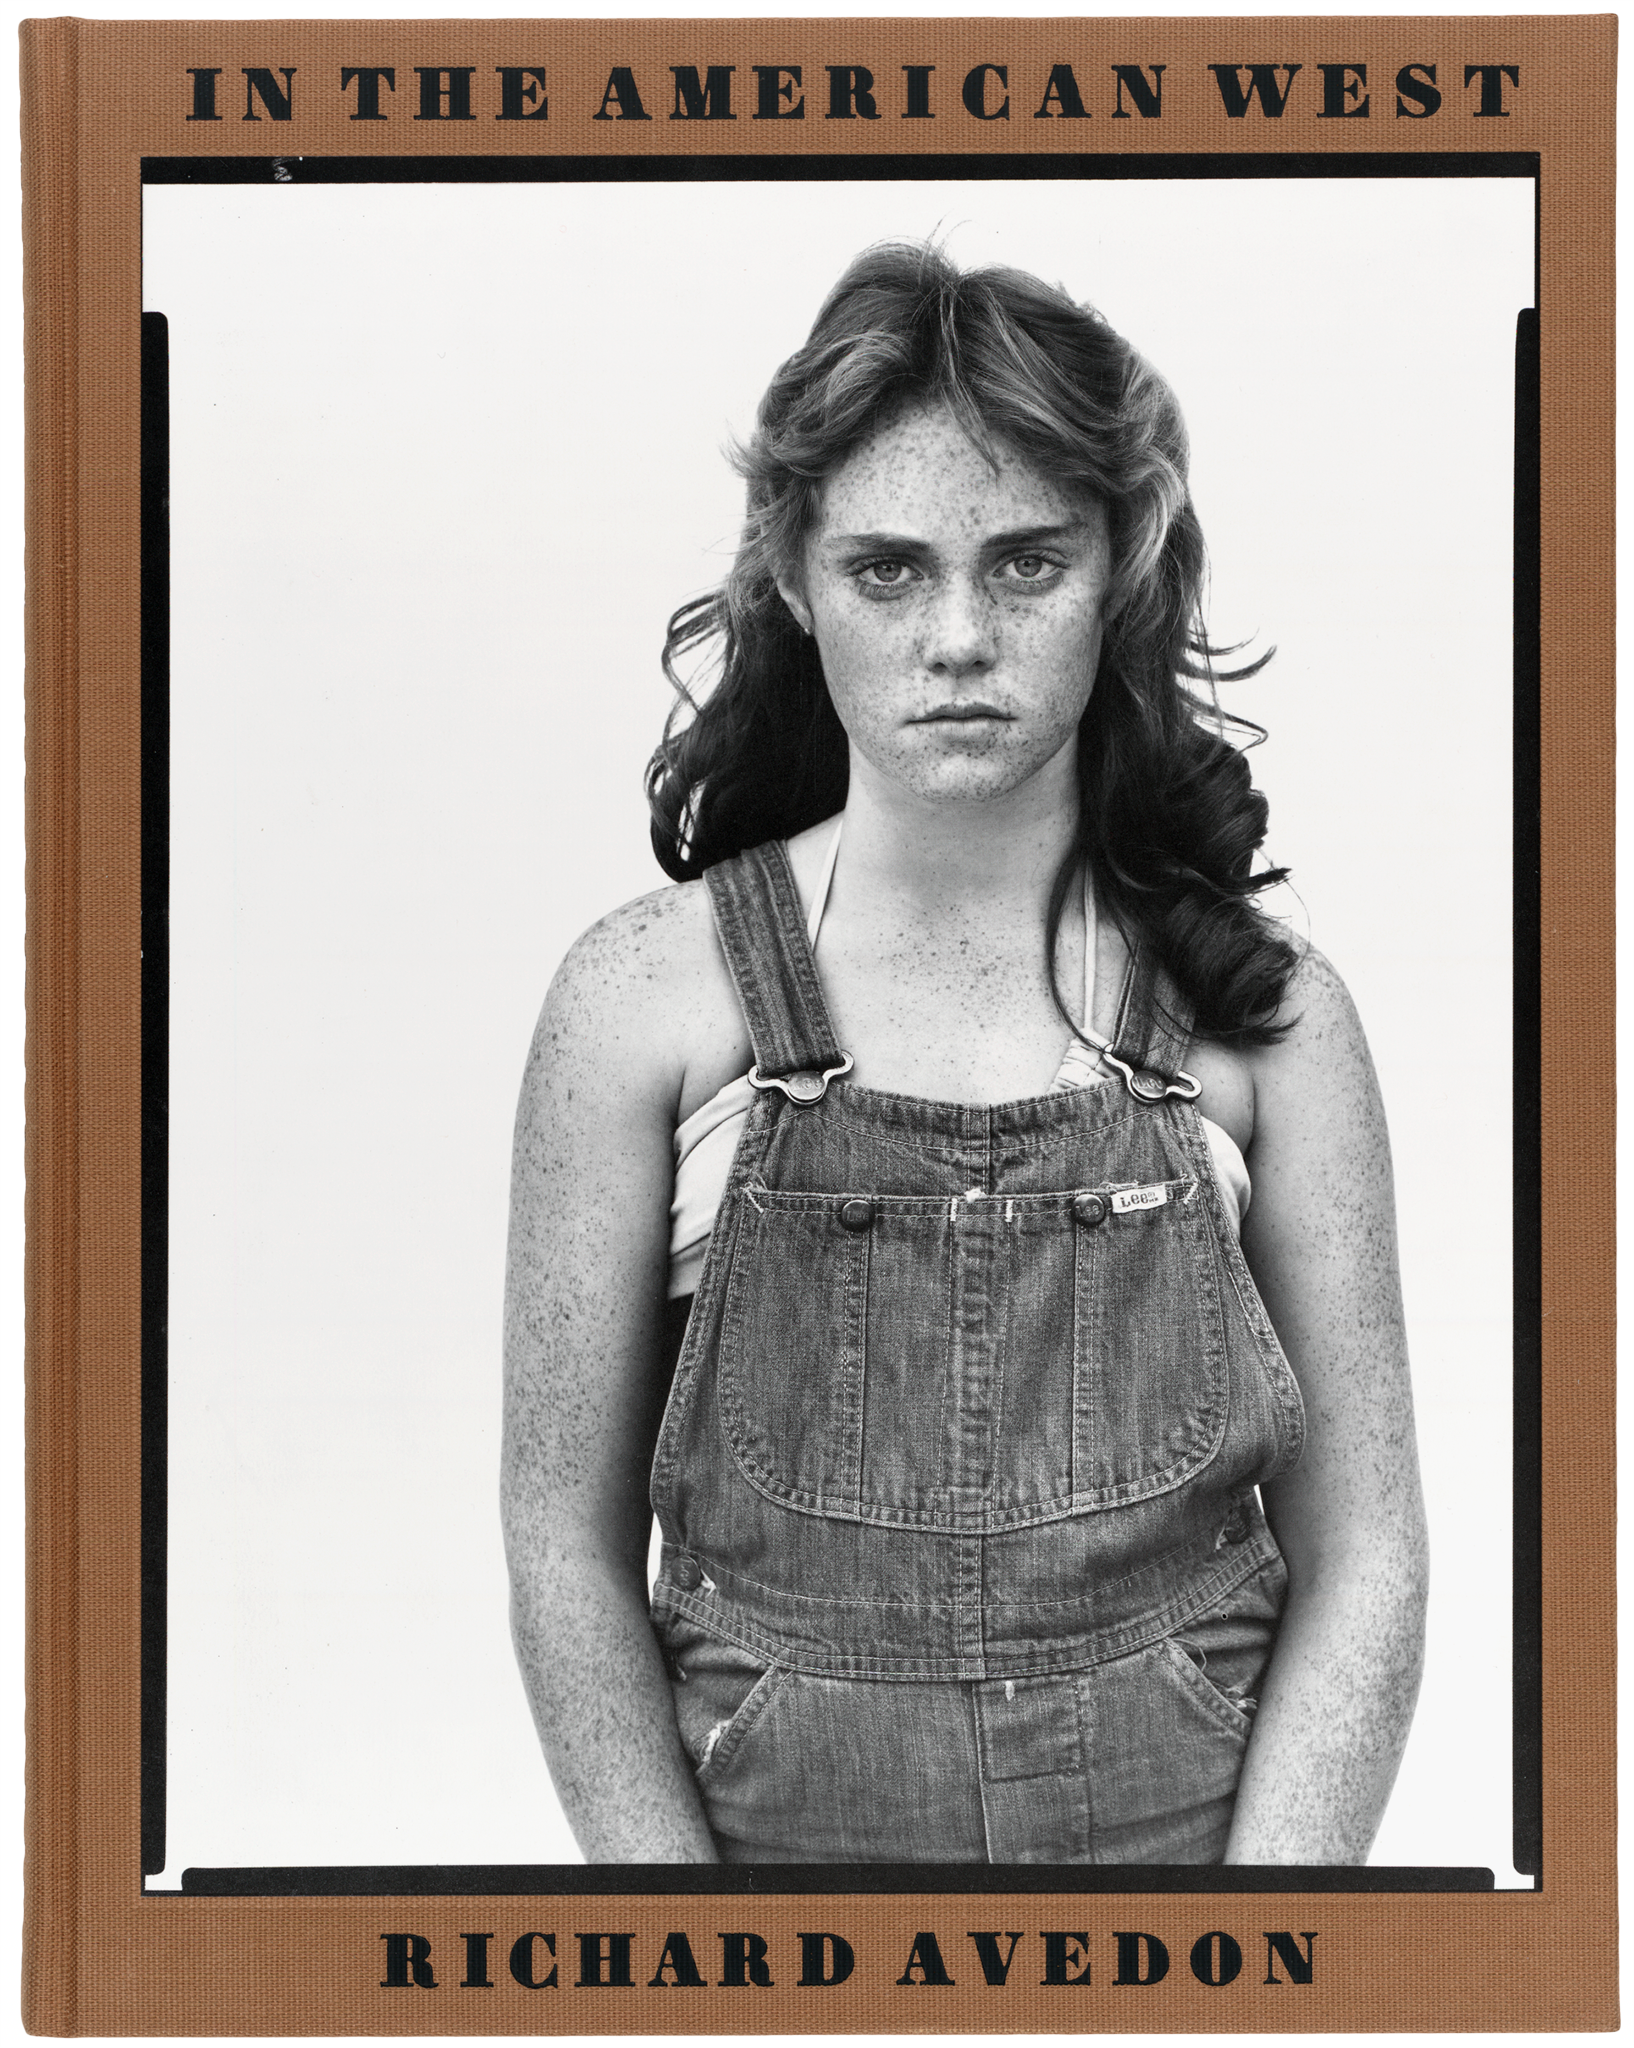 In the American West  (1985), texts by Richard Avedon and Laura Wilson